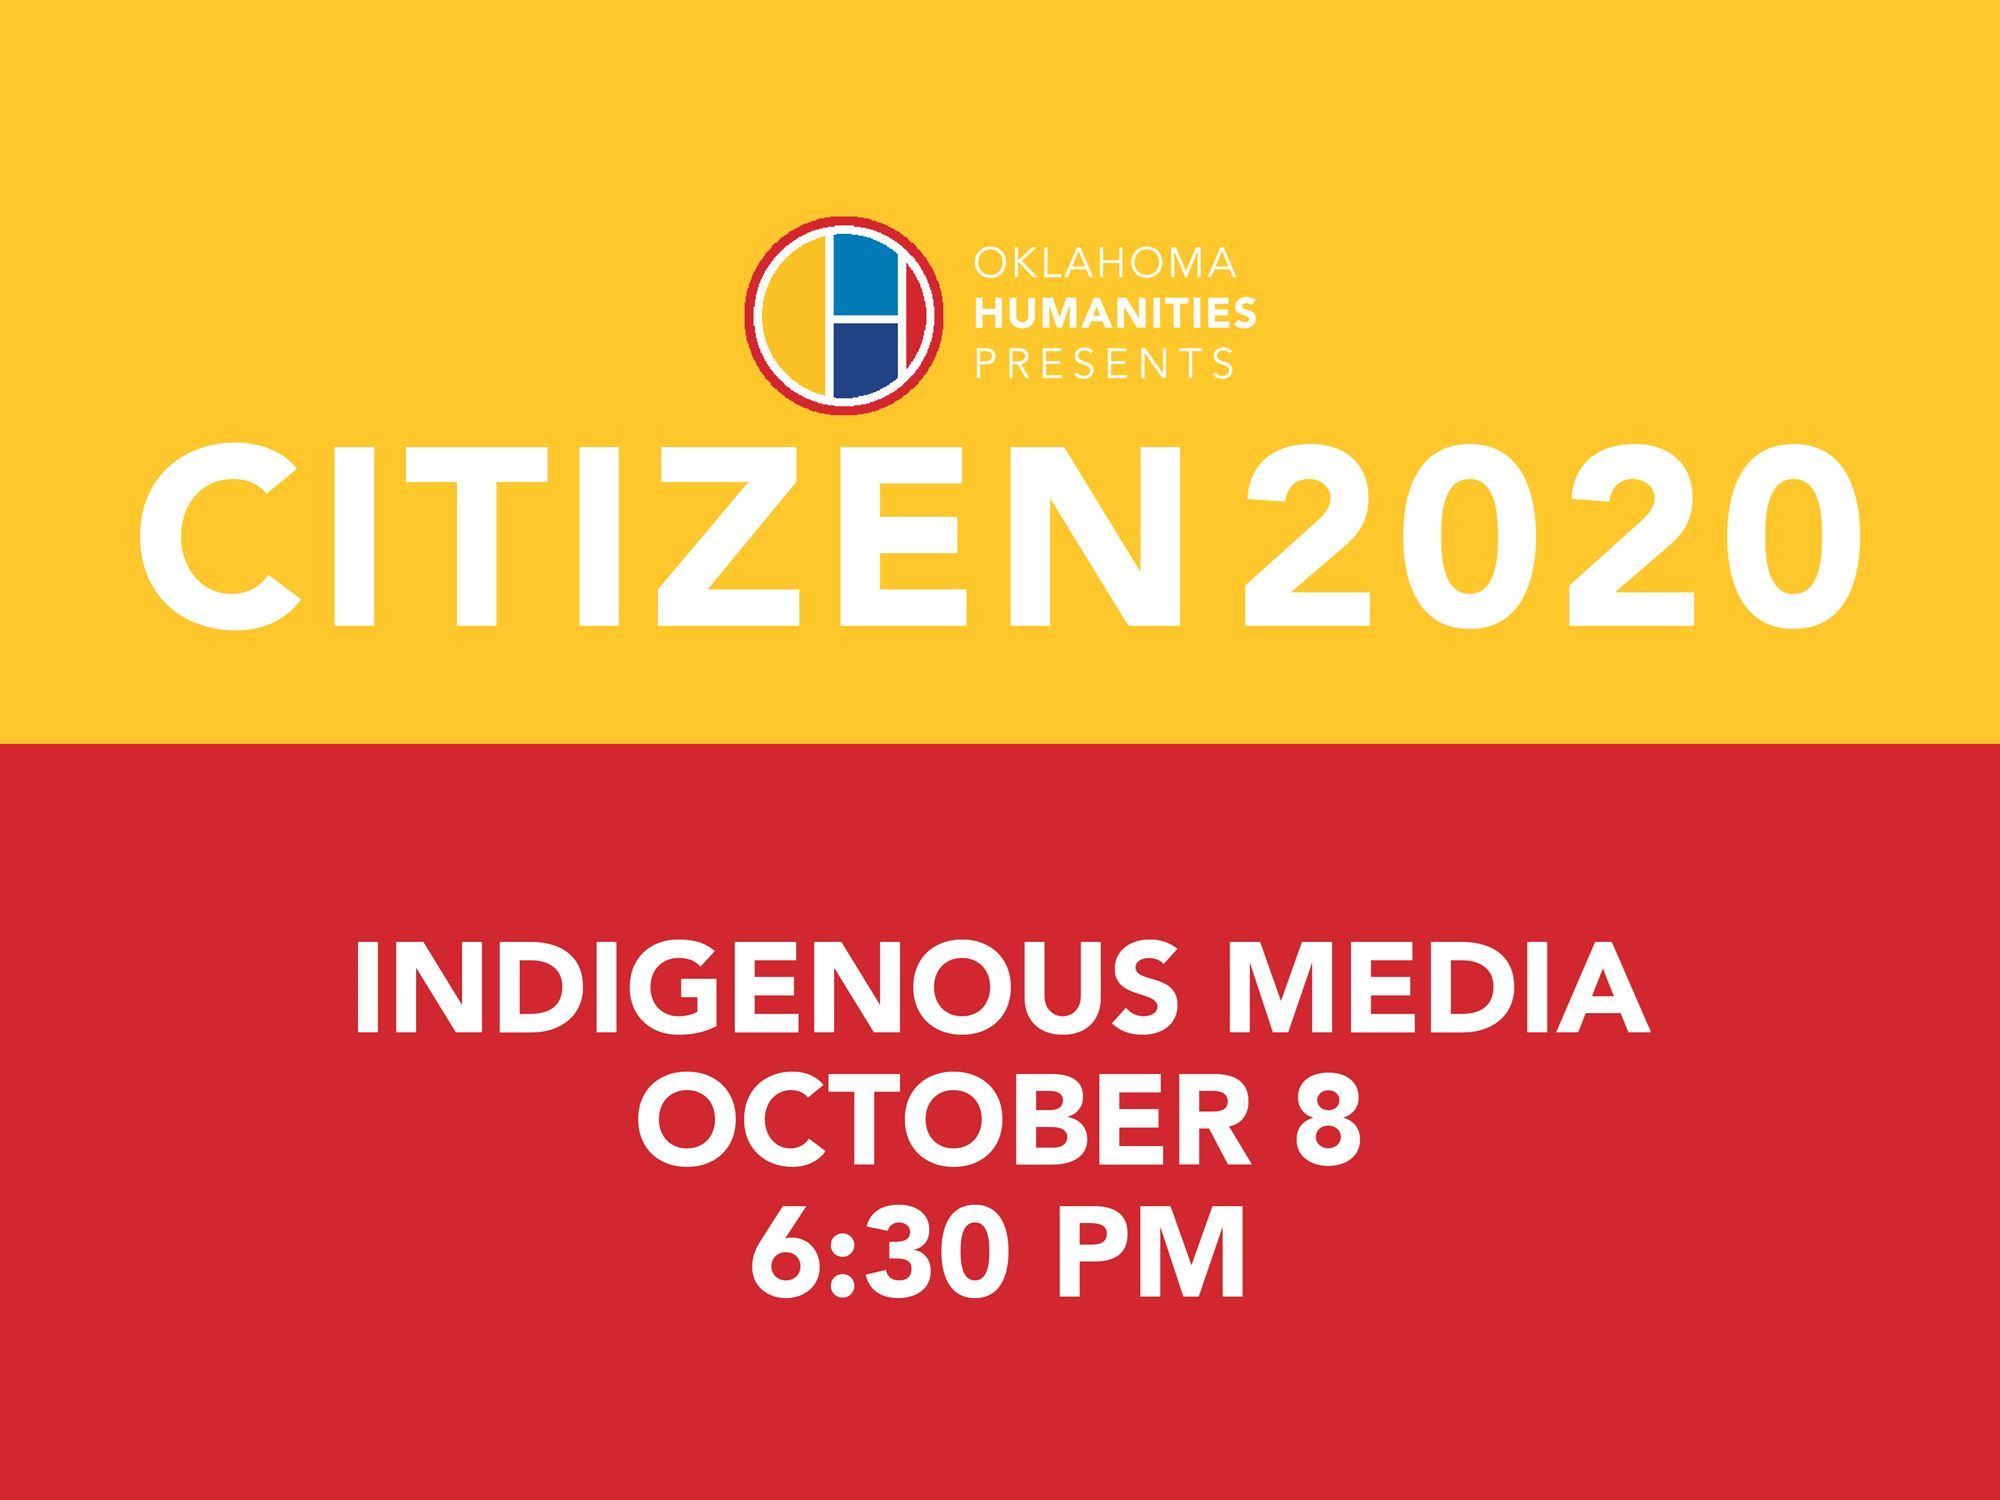 Citizen 2020 - Indigenous Media Initiative Event Image